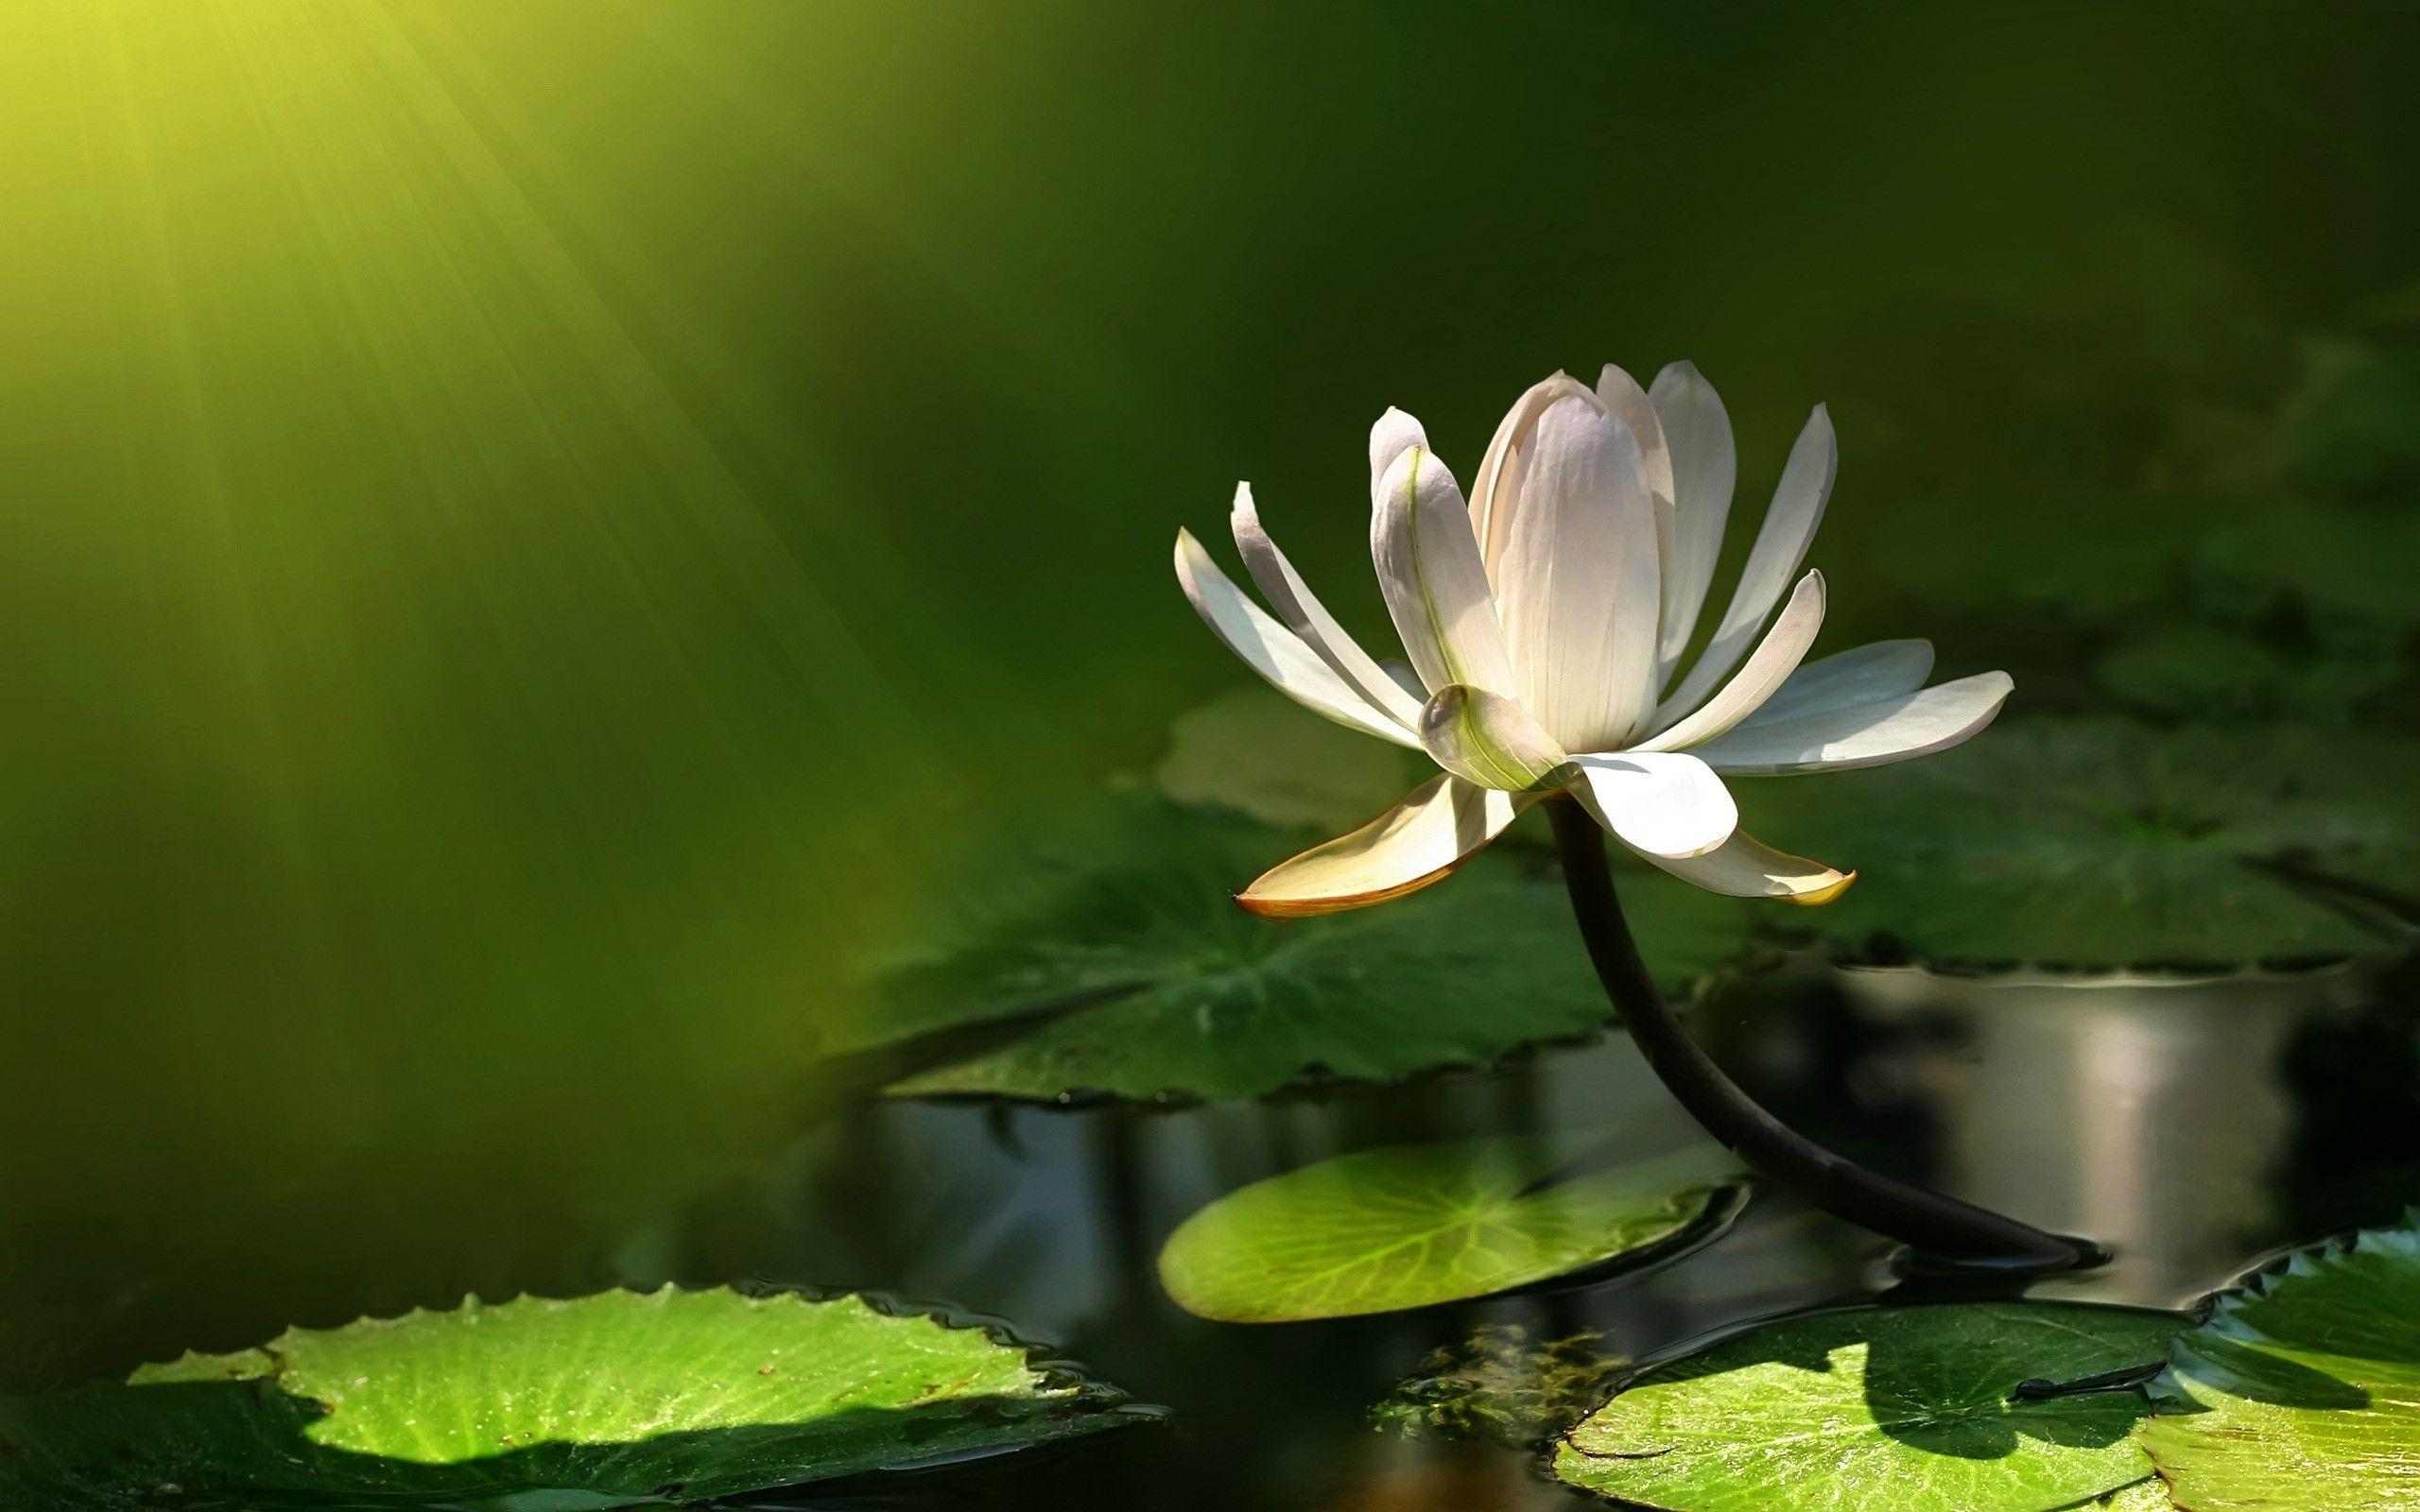 Lily pad wallpapers wallpaper cave lilly pad flower hd wallpapers izmirmasajfo